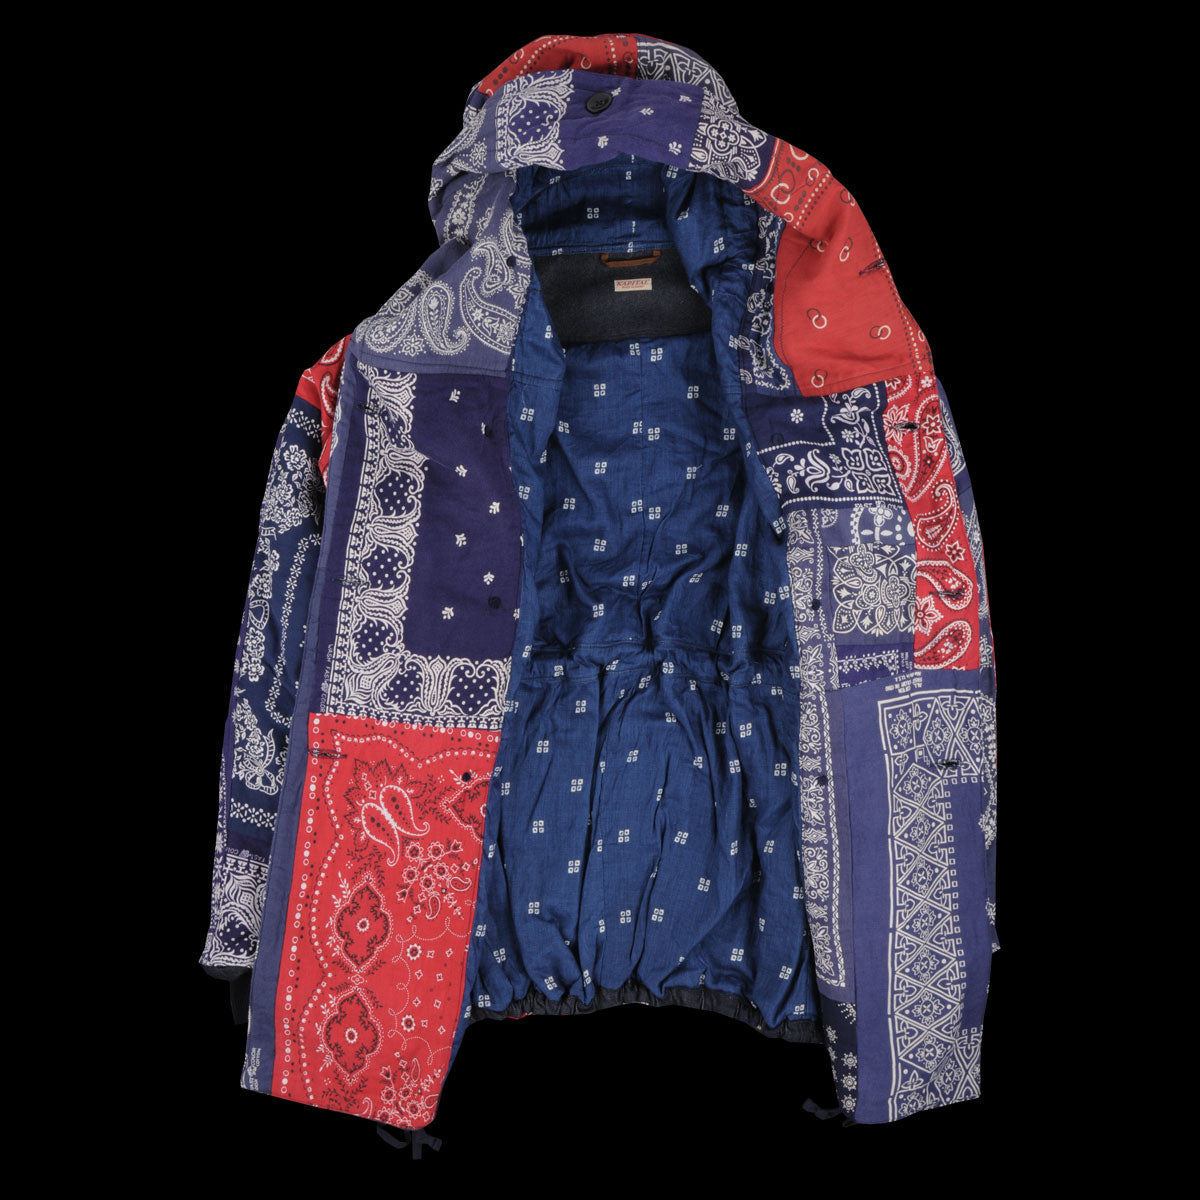 Bandana Patchwork Ring Coat in Blue & Red